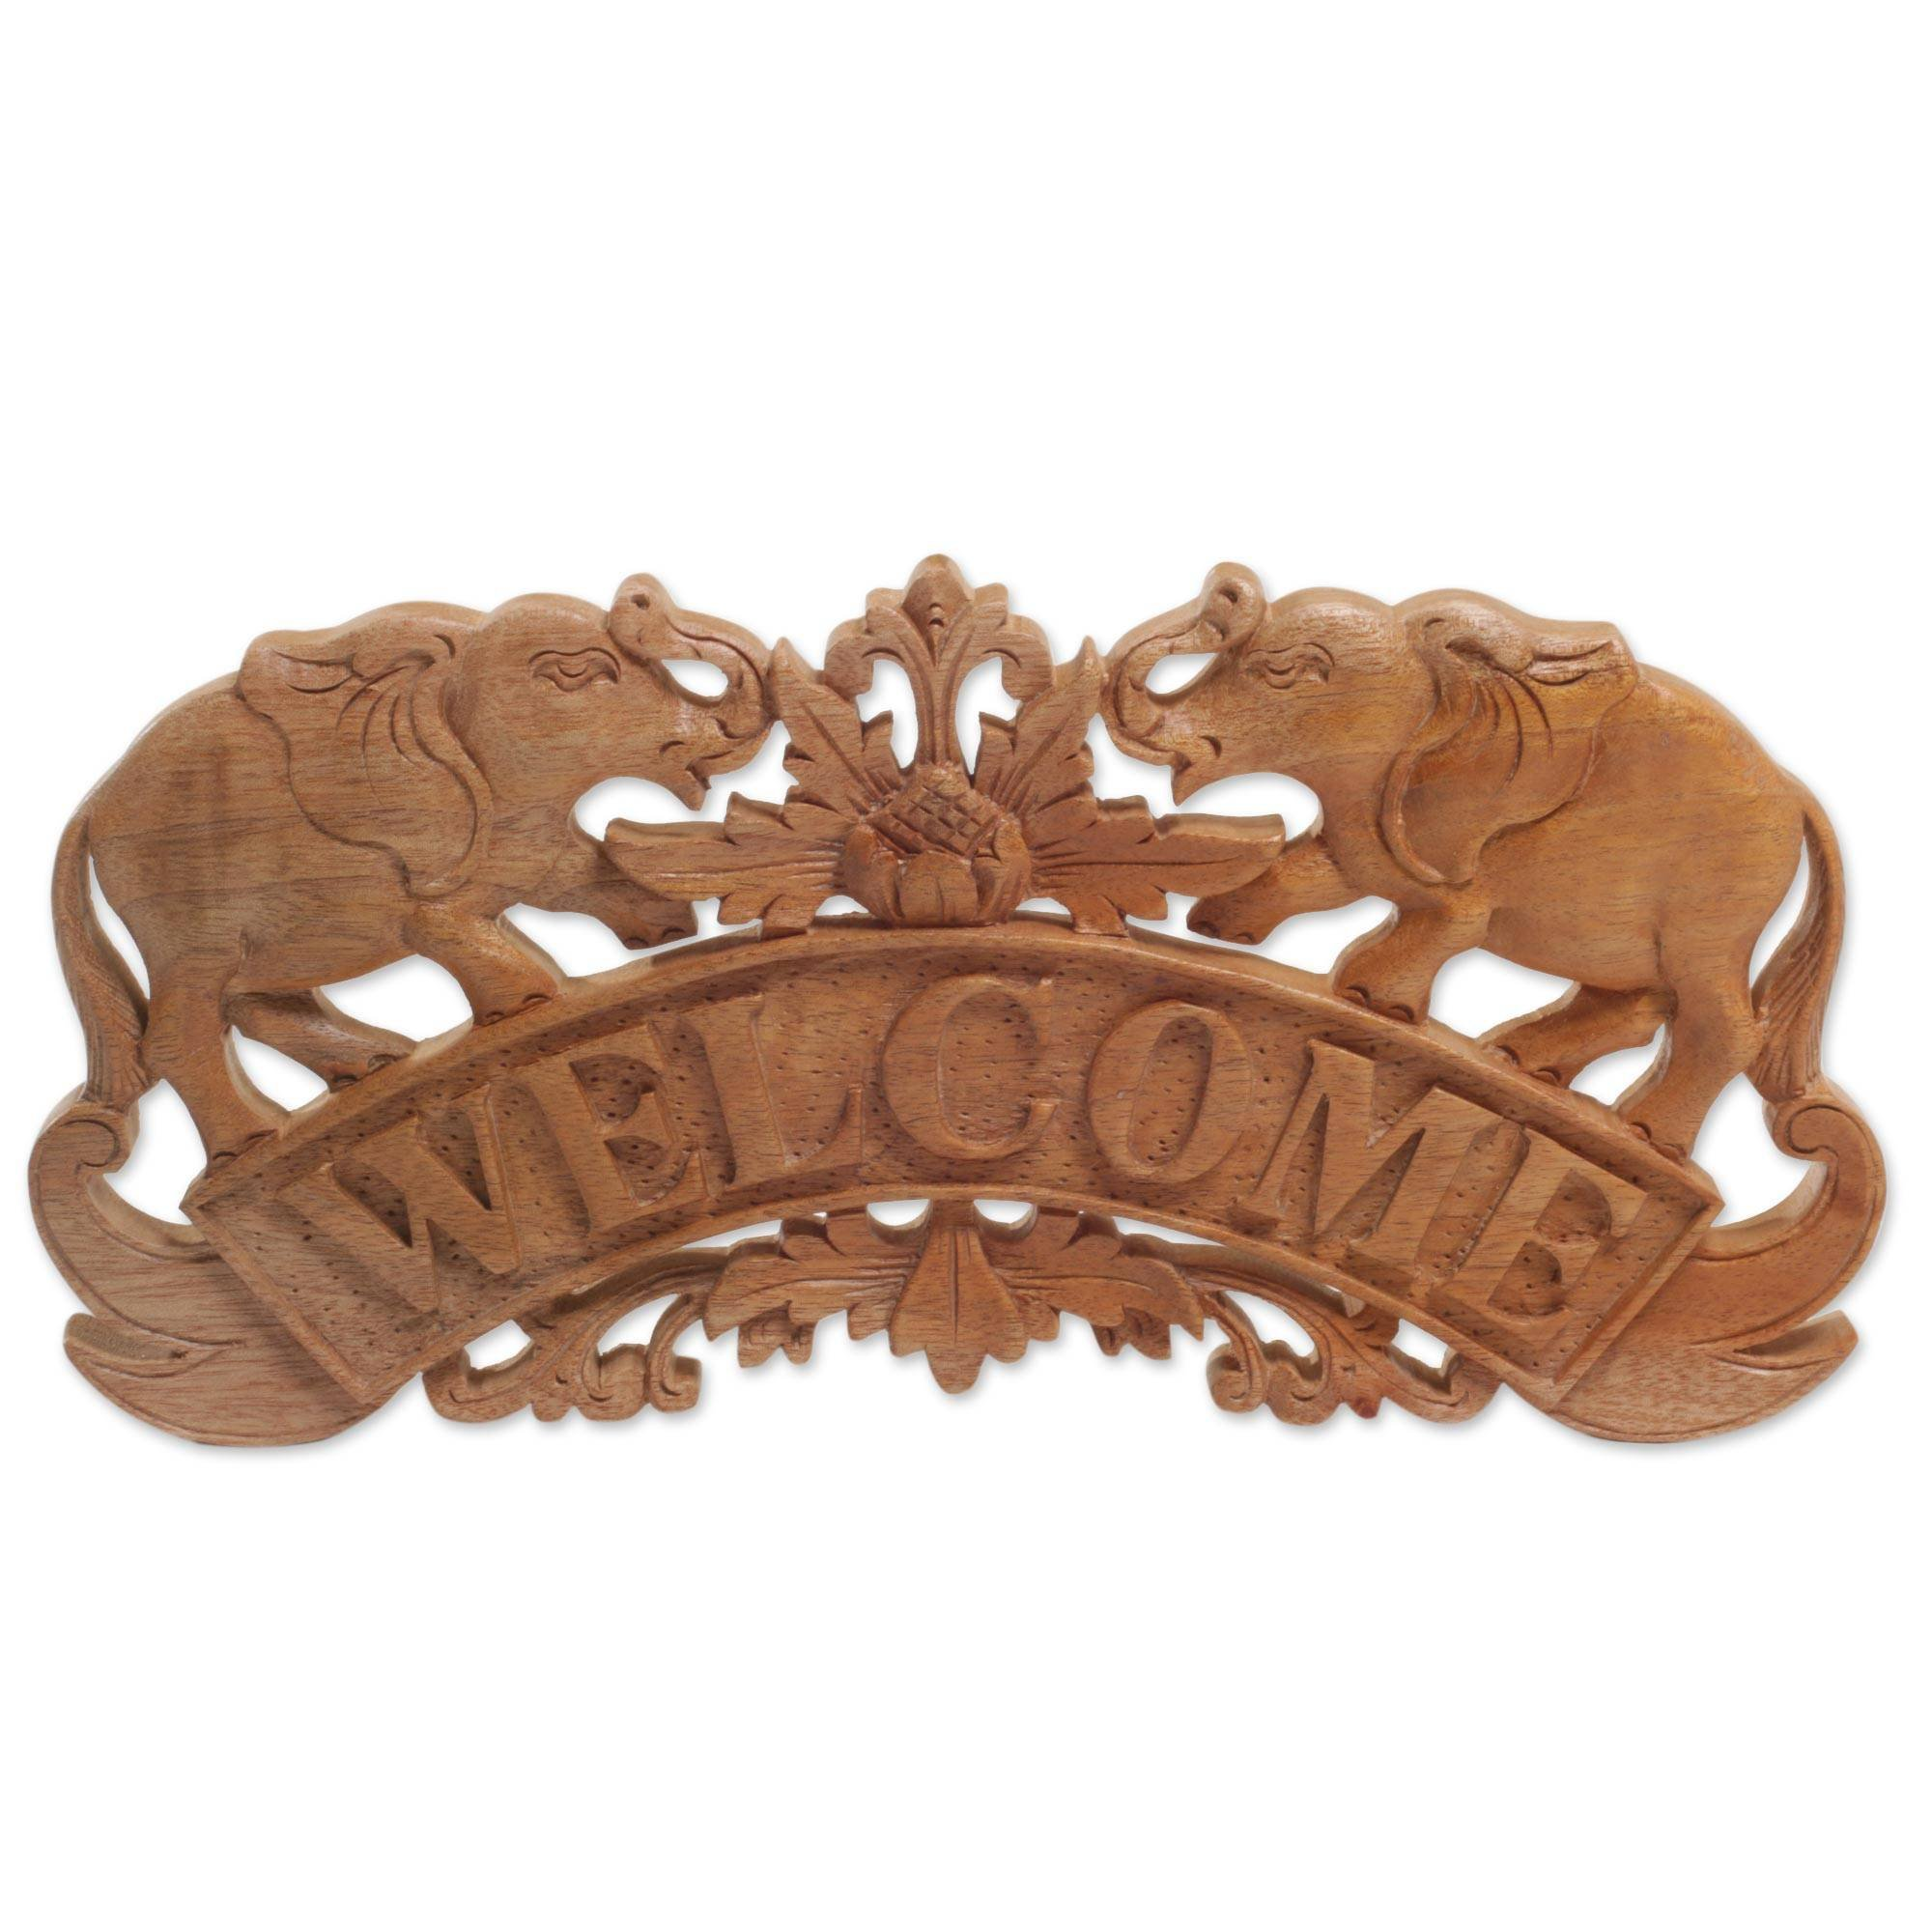 NOVICA Animal Themed Wood Wall Sculpture, Brown, Majestic Welcome'